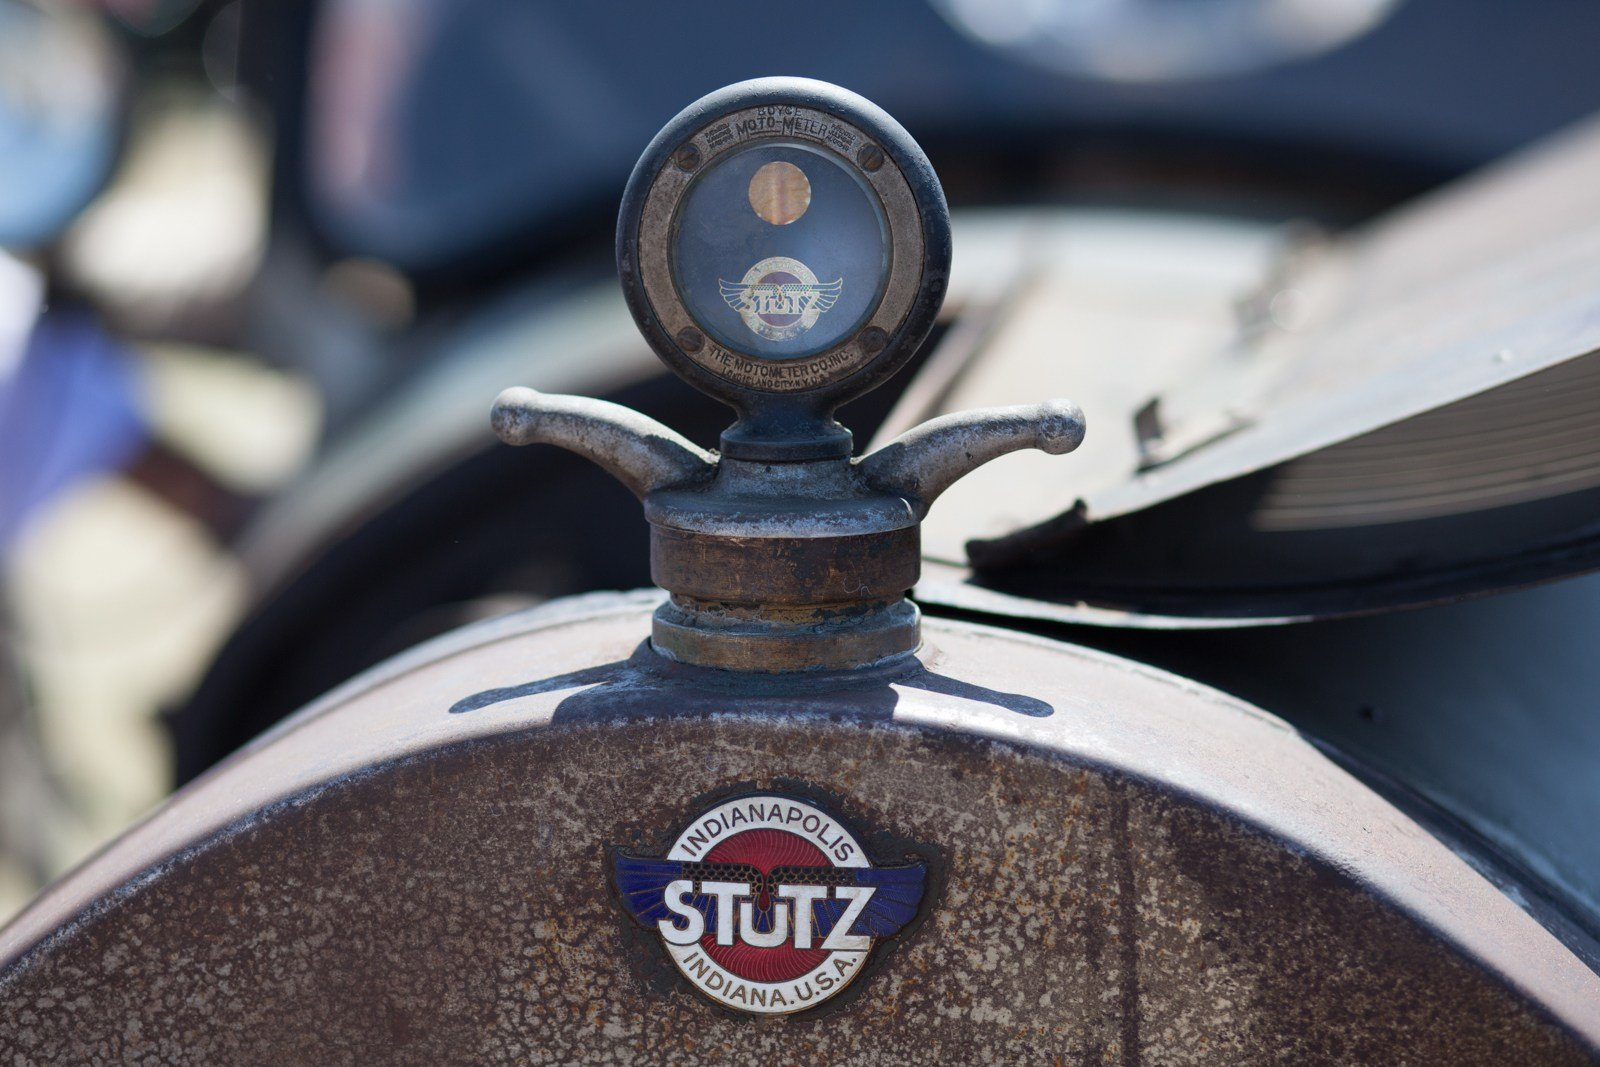 Cool hood ornaments - Designed As A Temperature Gauge These Important Pieces Of Instrumentation Got Fancier And Fancier Over Time And Eventually Became A Popular Way To